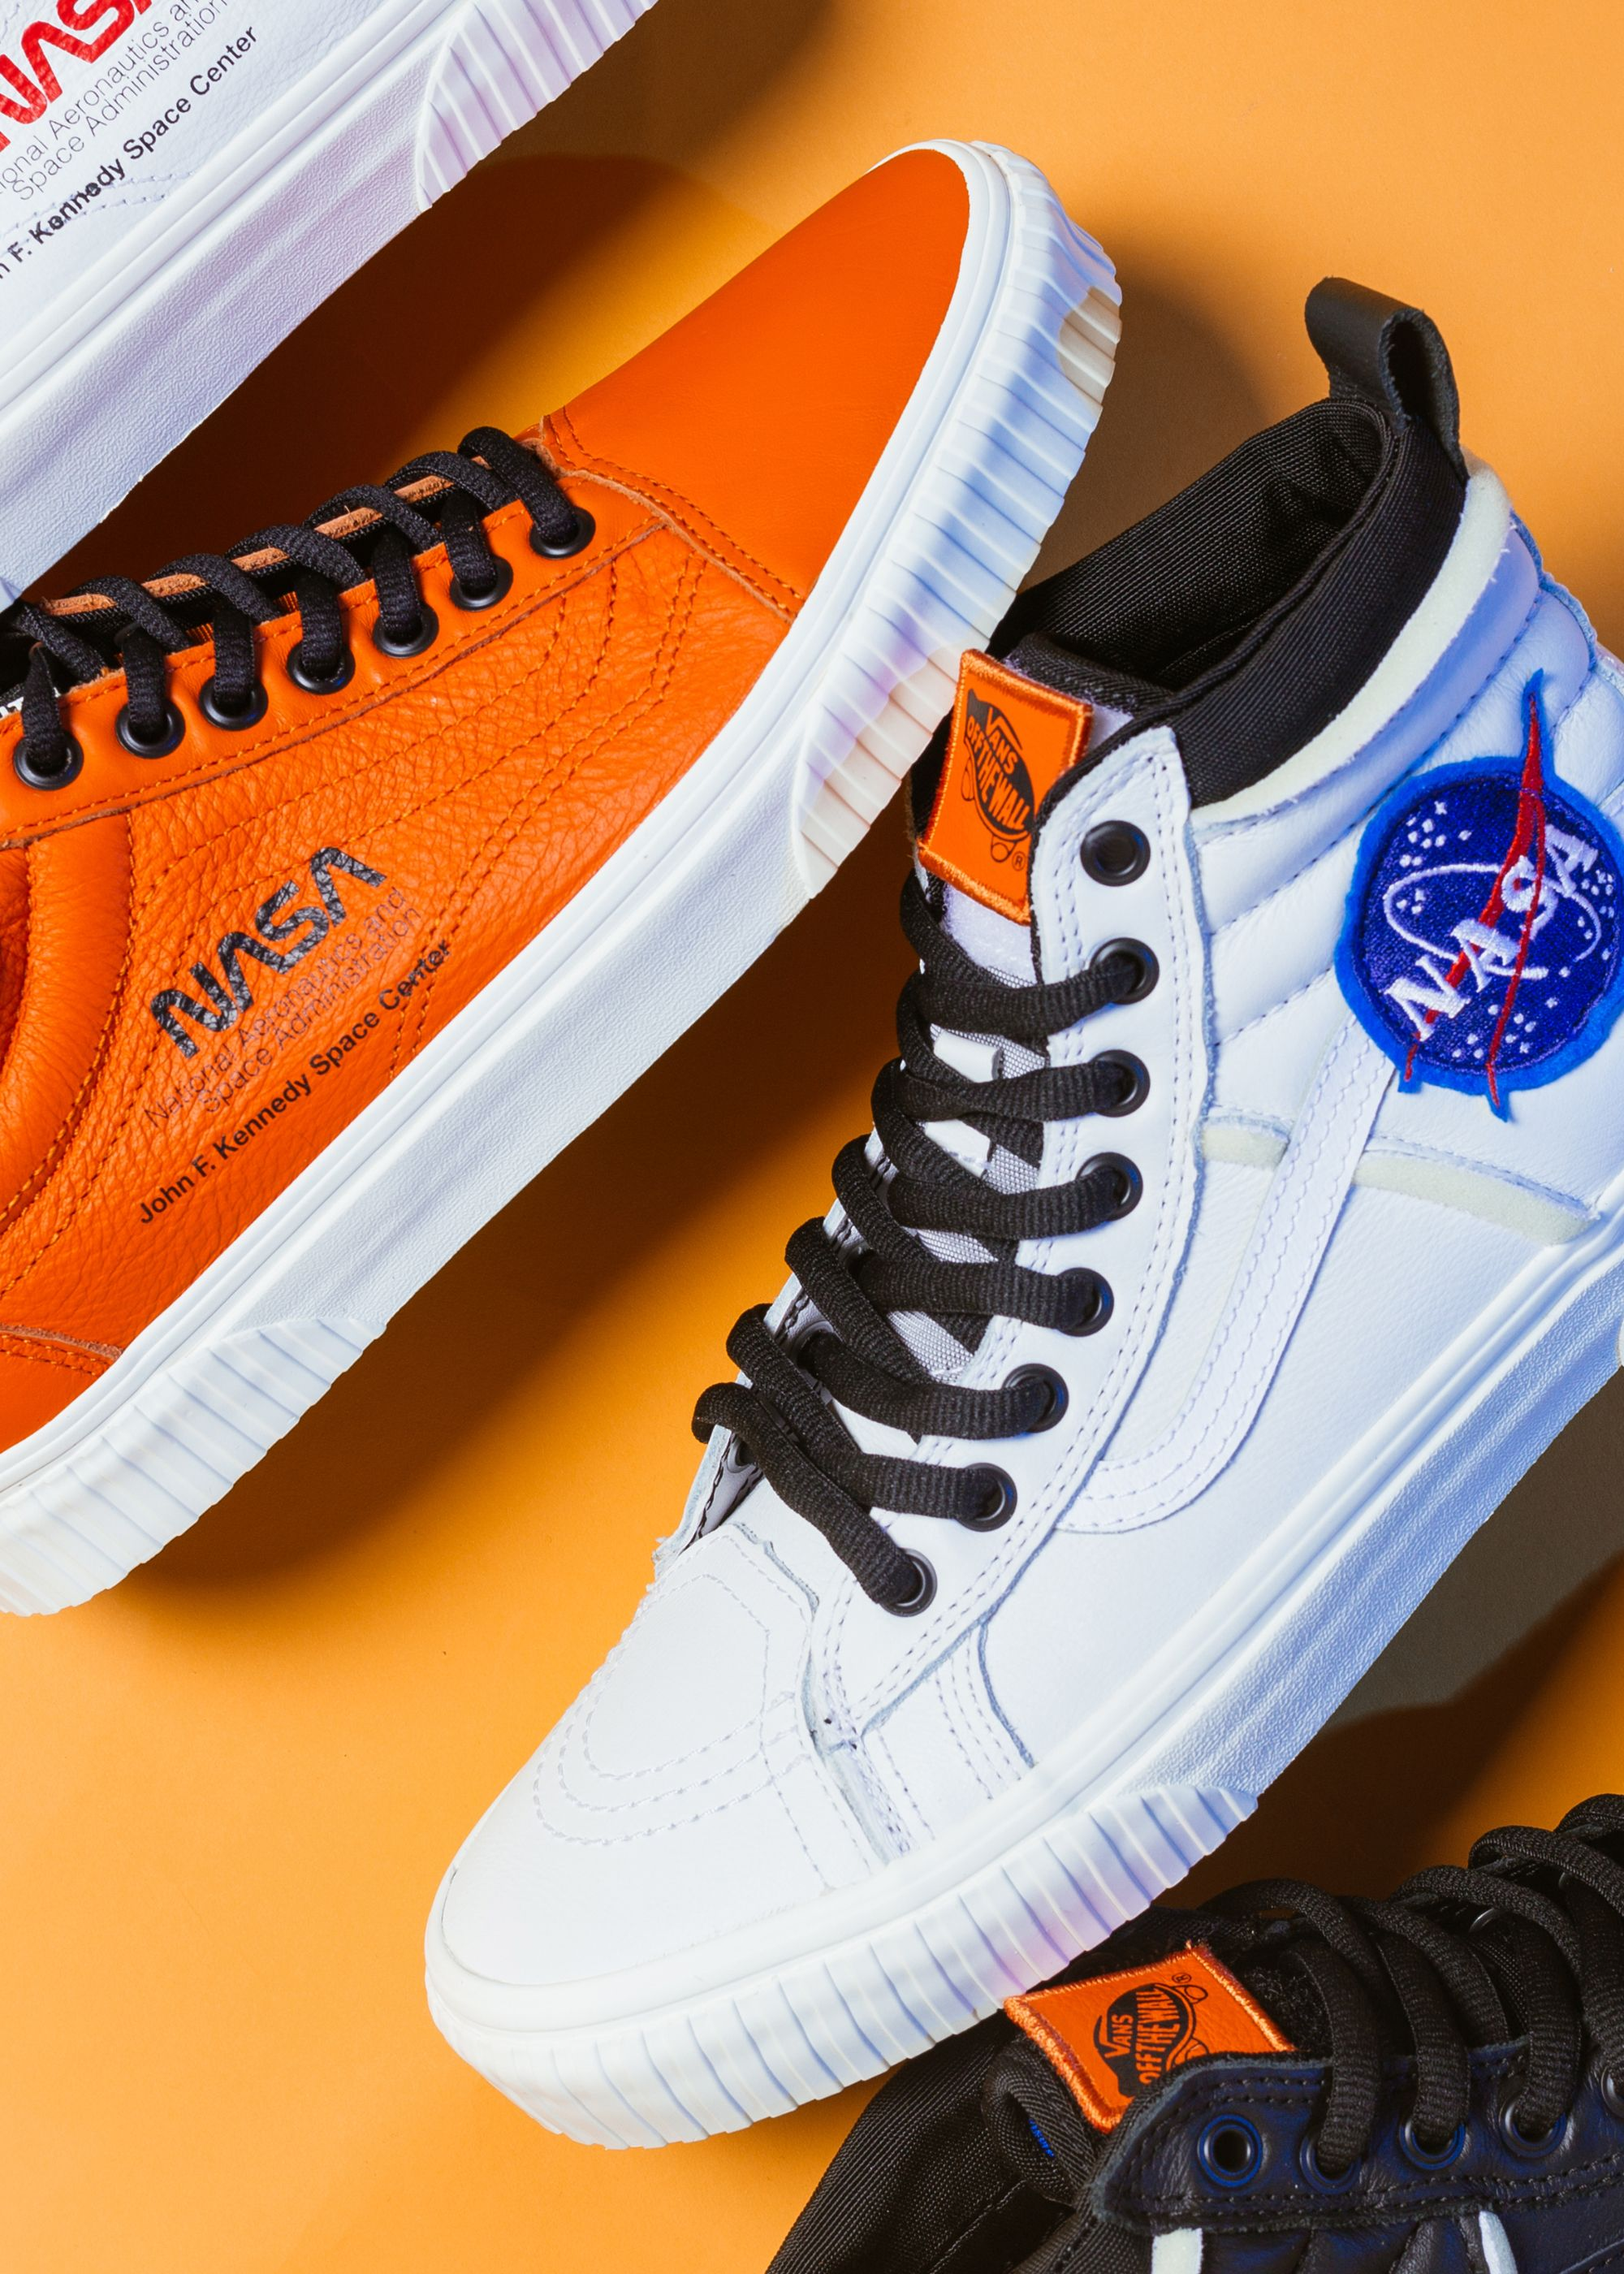 Vans Space Voyager Pack | Nasa clothes, Retro running shoes